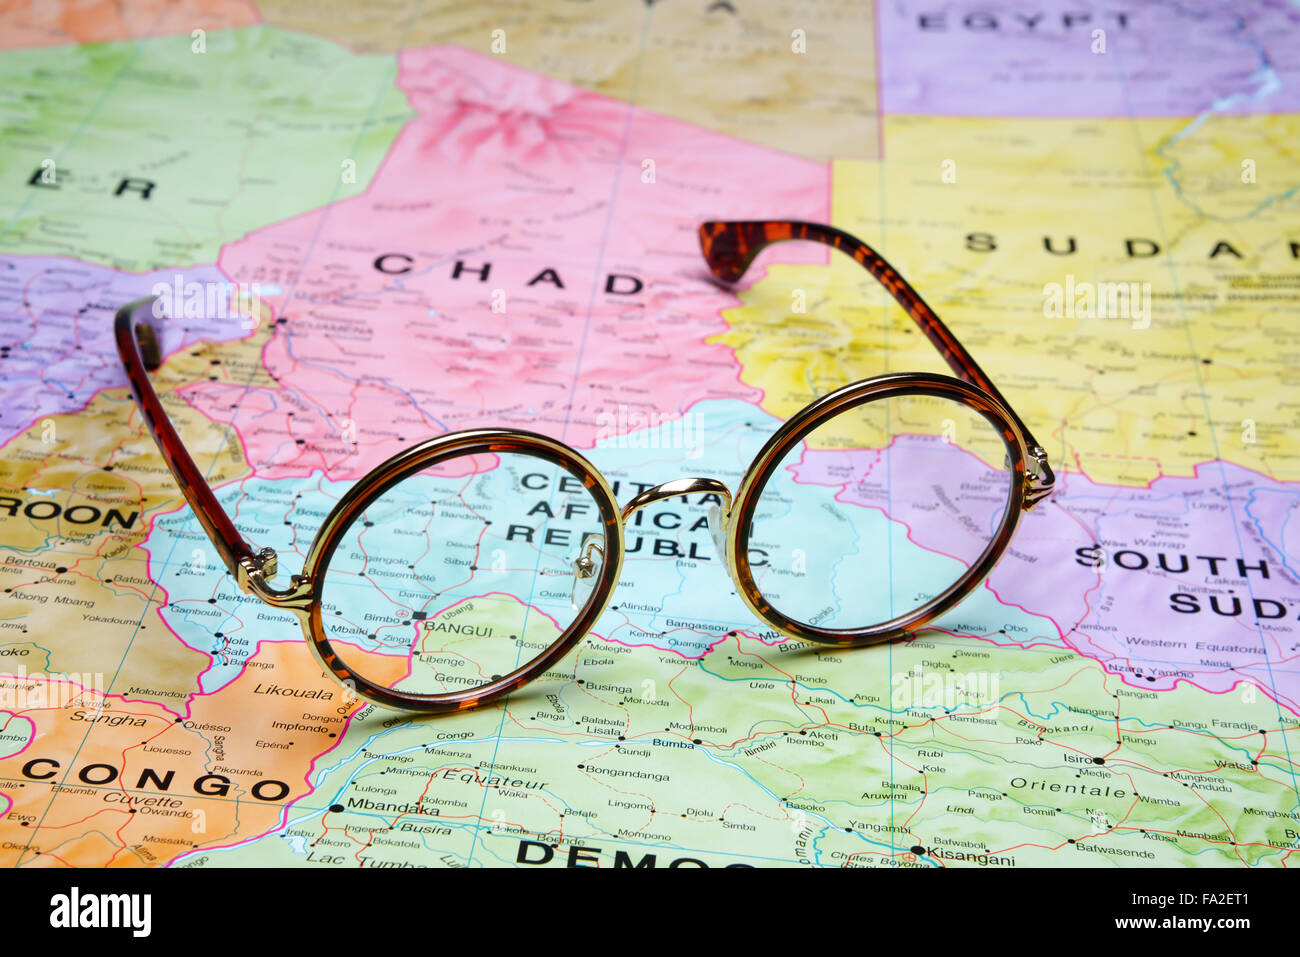 Glasses on a map Bangui Stock Photo Royalty Free Image 92253953